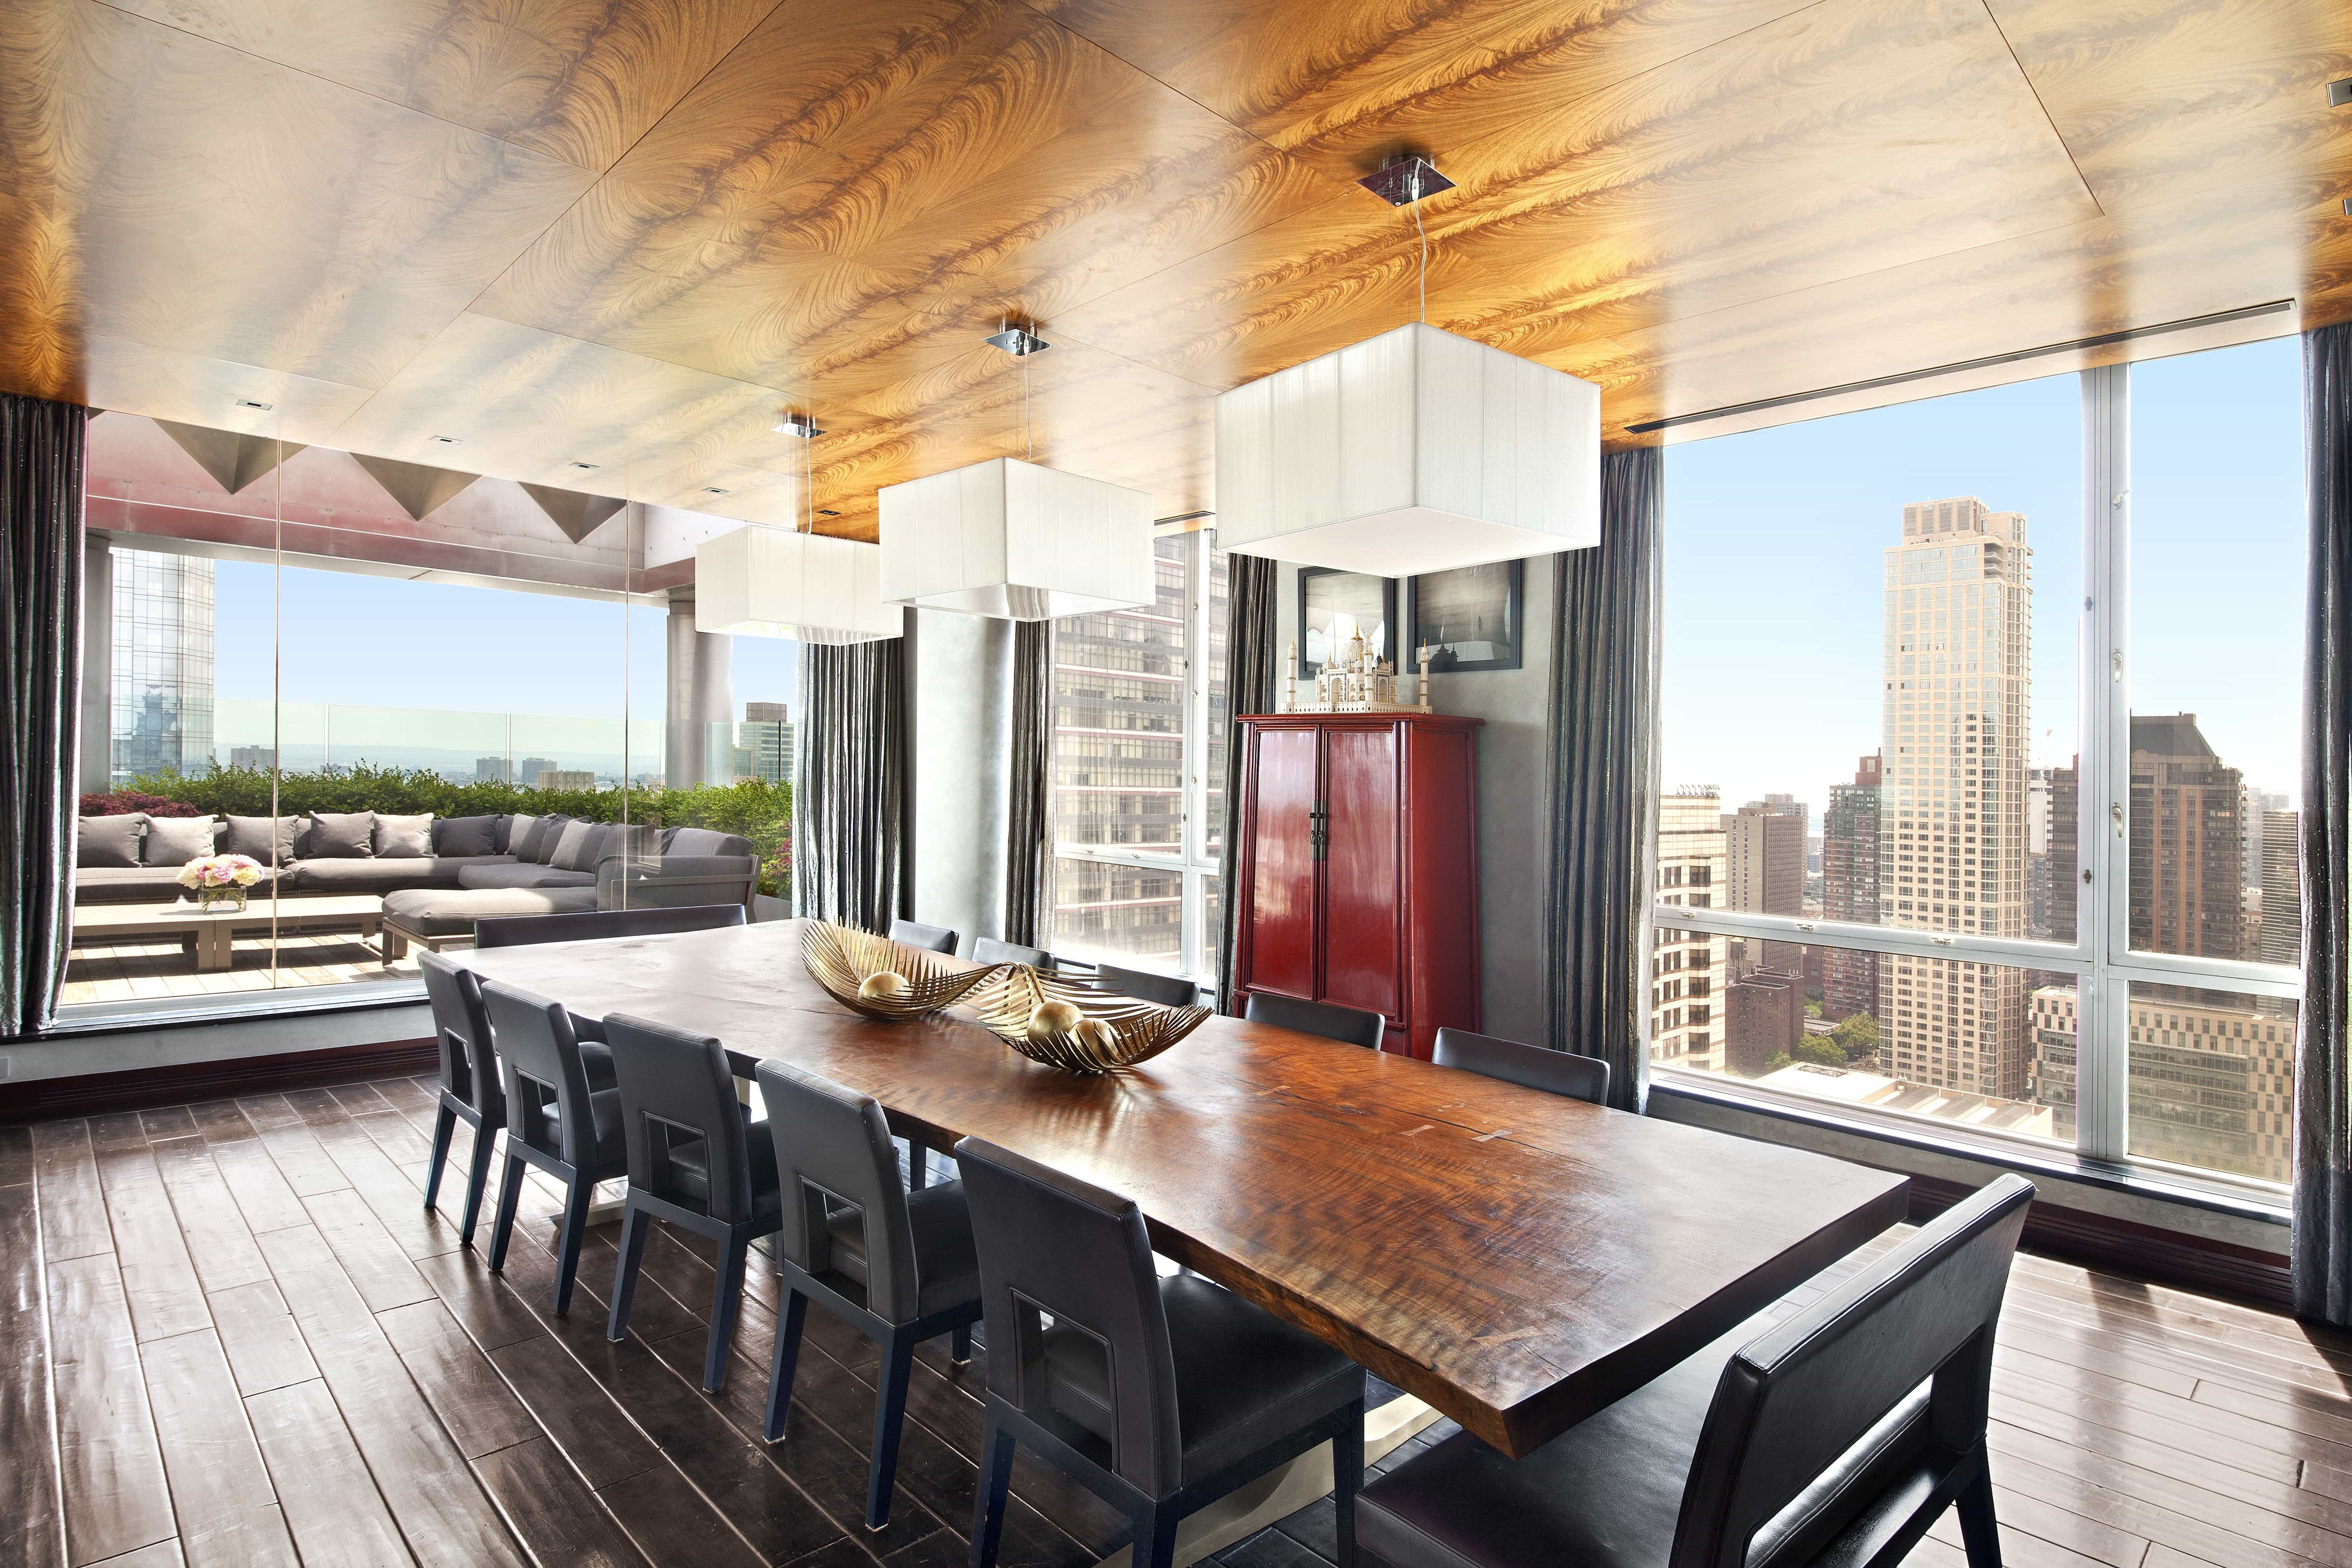 Featured Image of Paneled Exotic Wood Ceiling For Luxury Apartment Dining Room